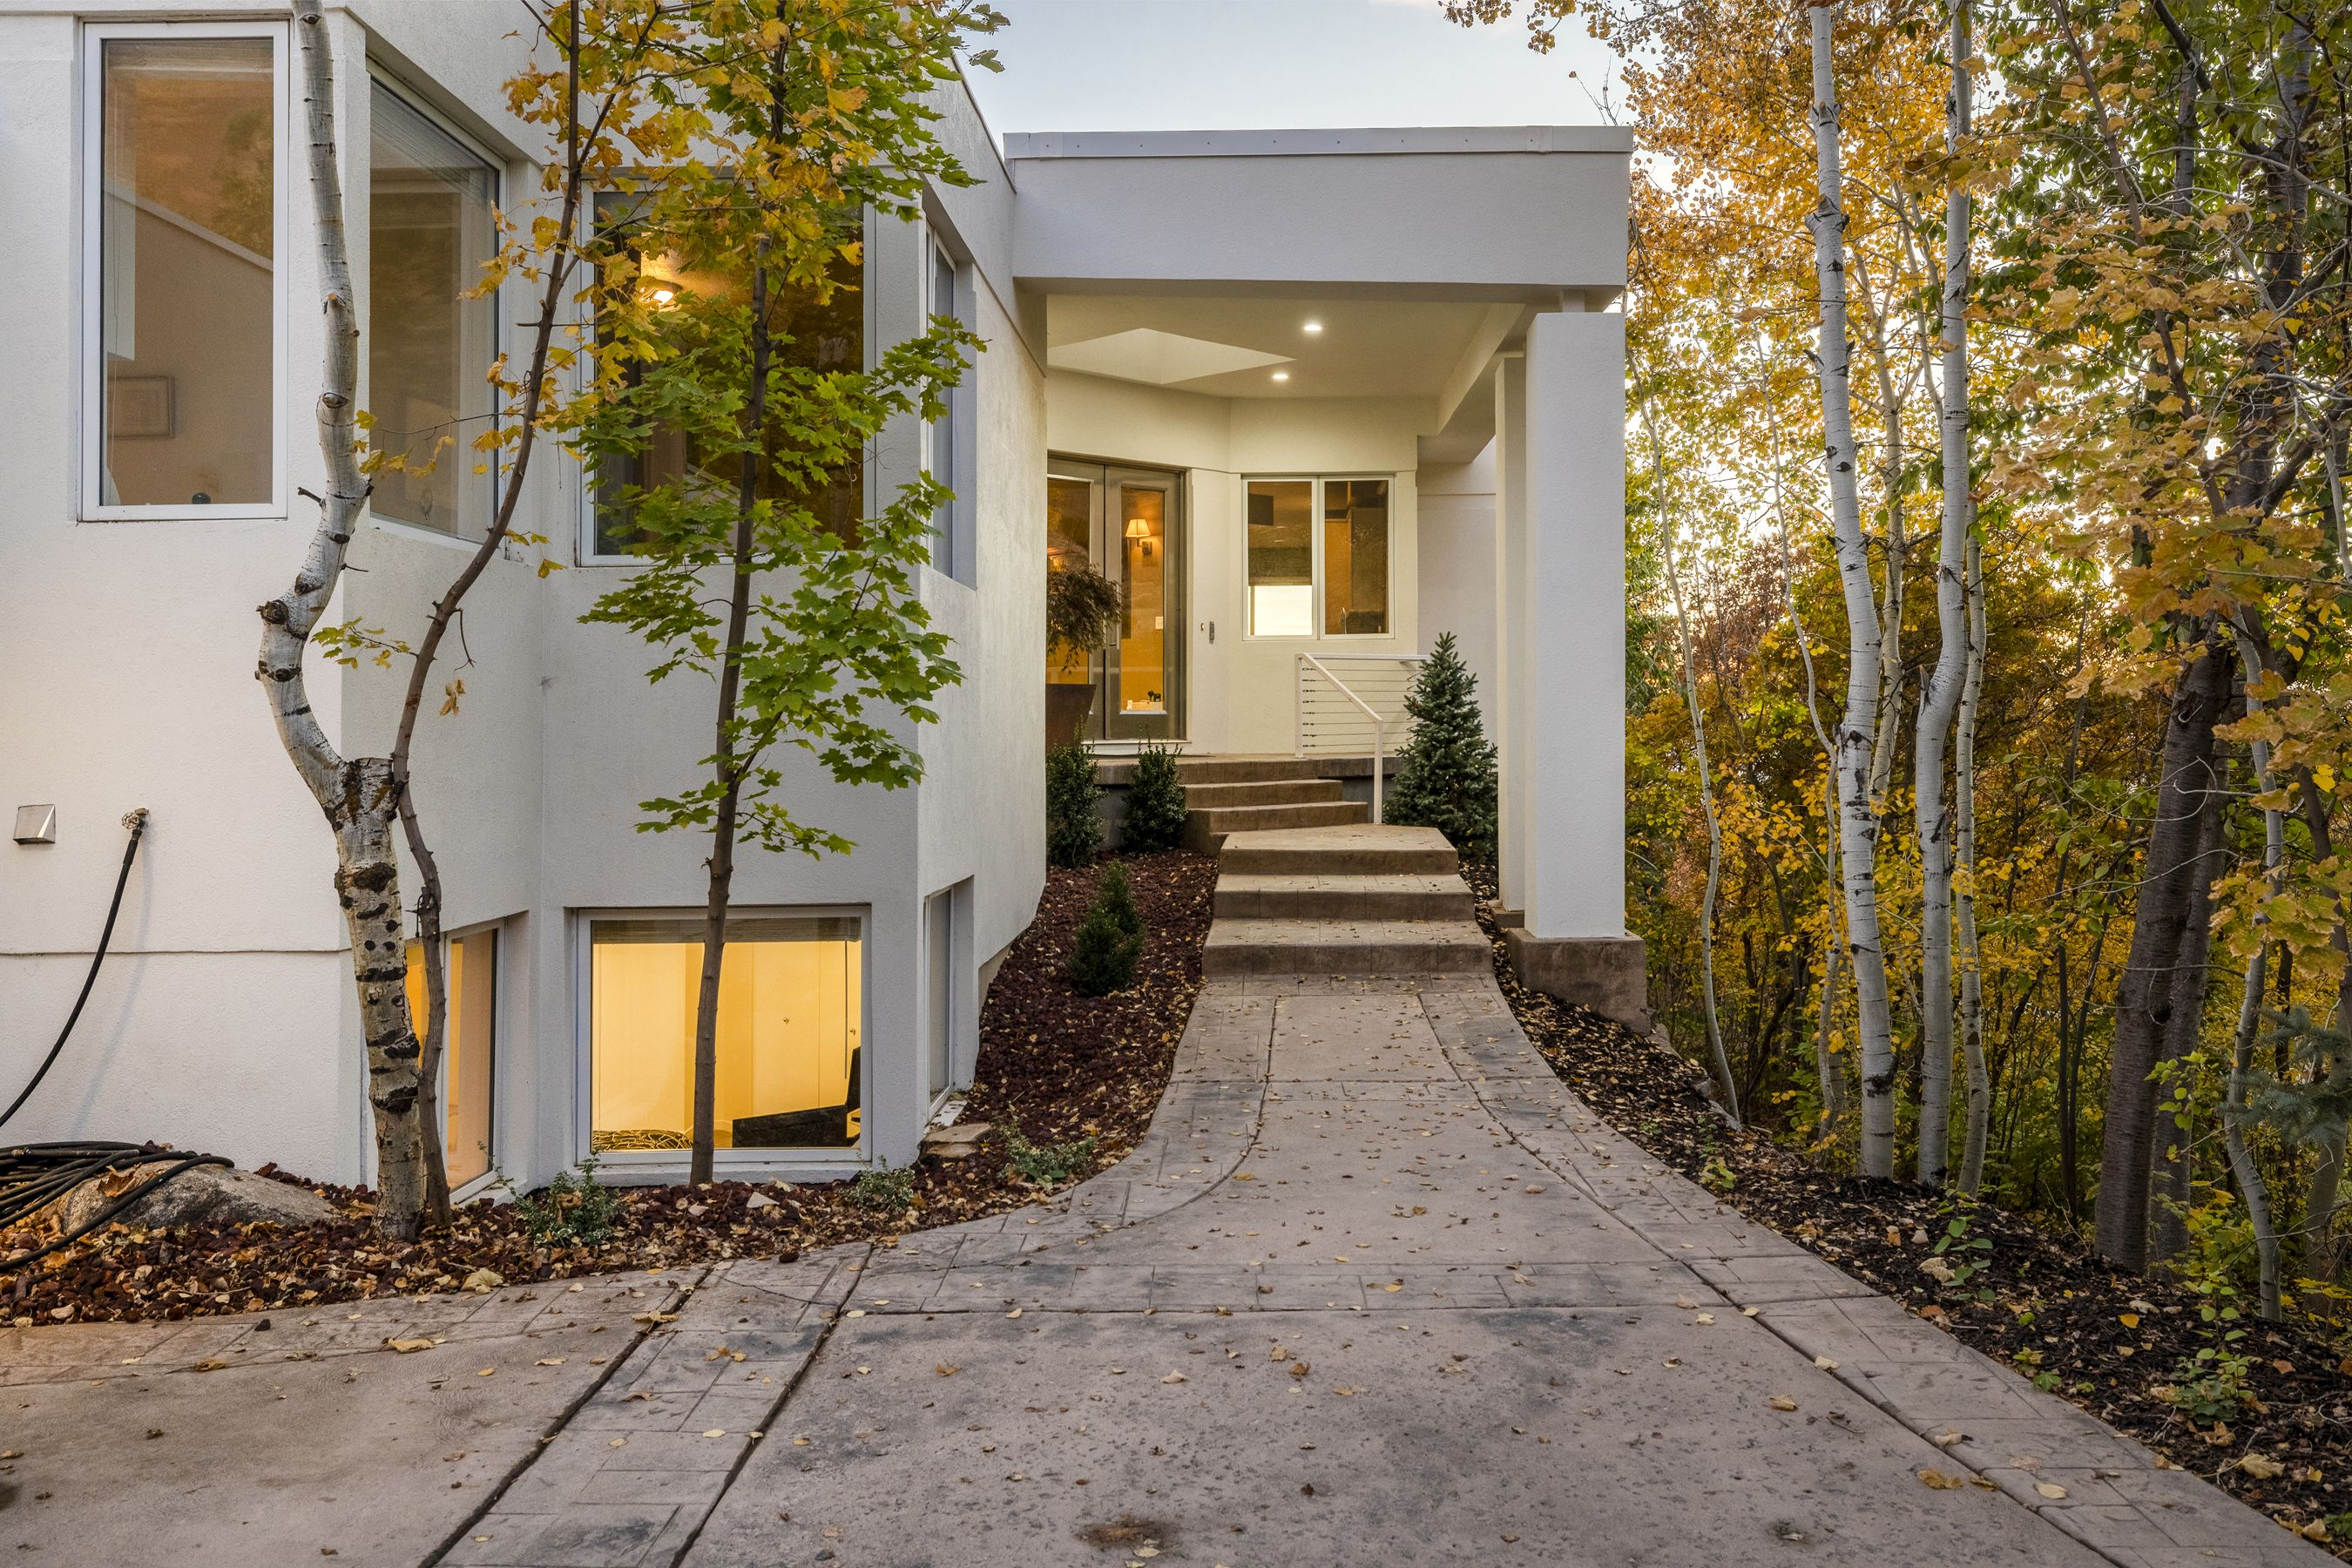 Tucked away up in the exclusive Carrigan Canyon neighborhood is an elegant, minimalist styled high-end home for the buyer who wants privacy, spectacular views, and a connection to Utah's natural beauty. #WindermereUtah #UtahHomes #LuxuryHomes #LuxuryLiving #DreamHome #HomeDesign #HomeDecor #Modern #Minimalist #Minimal #Utah #HomeExterior